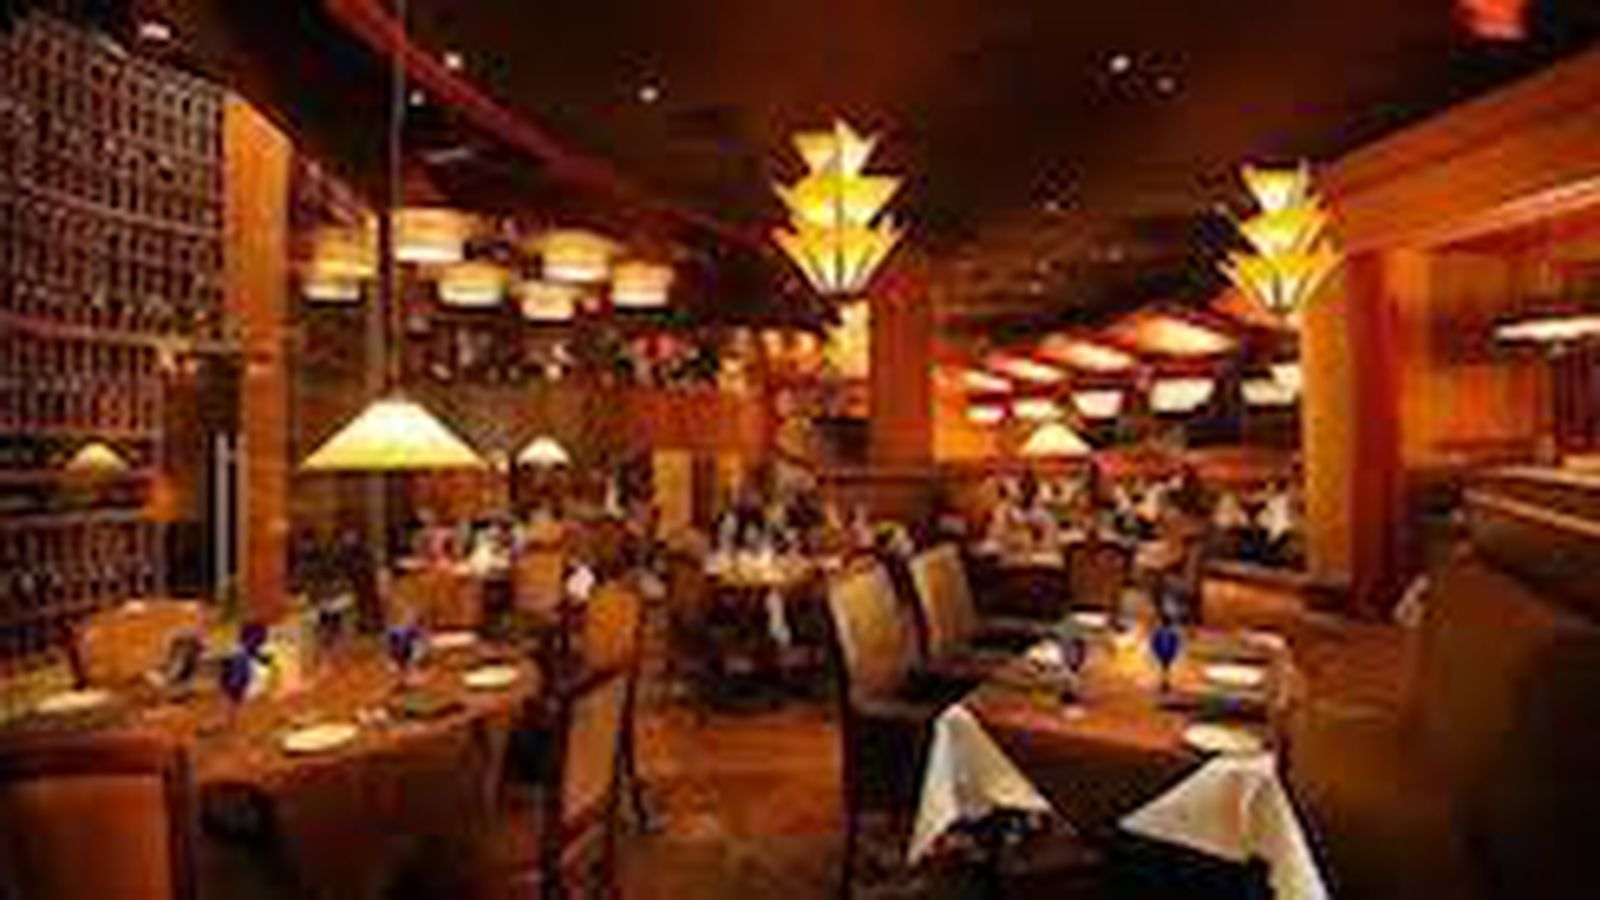 Restaurants In Katy With Private Rooms